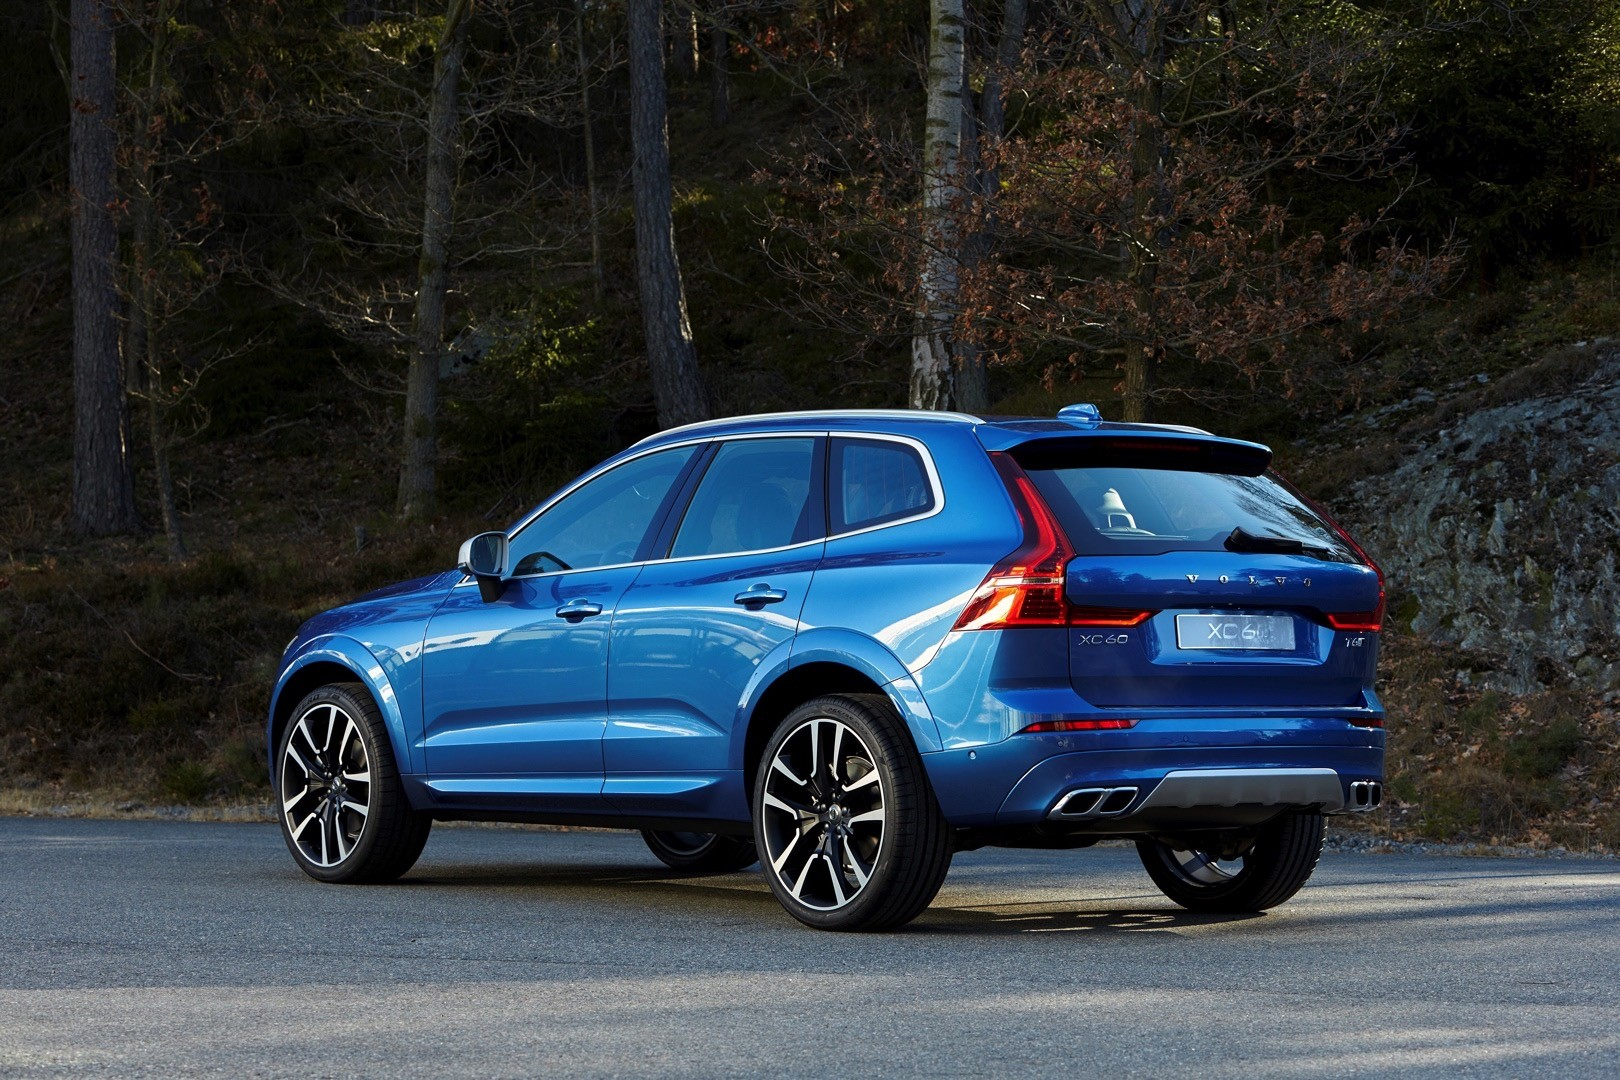 2018 volvo xc60 is the sexiest crossover suv in geneva autoevolution. Black Bedroom Furniture Sets. Home Design Ideas